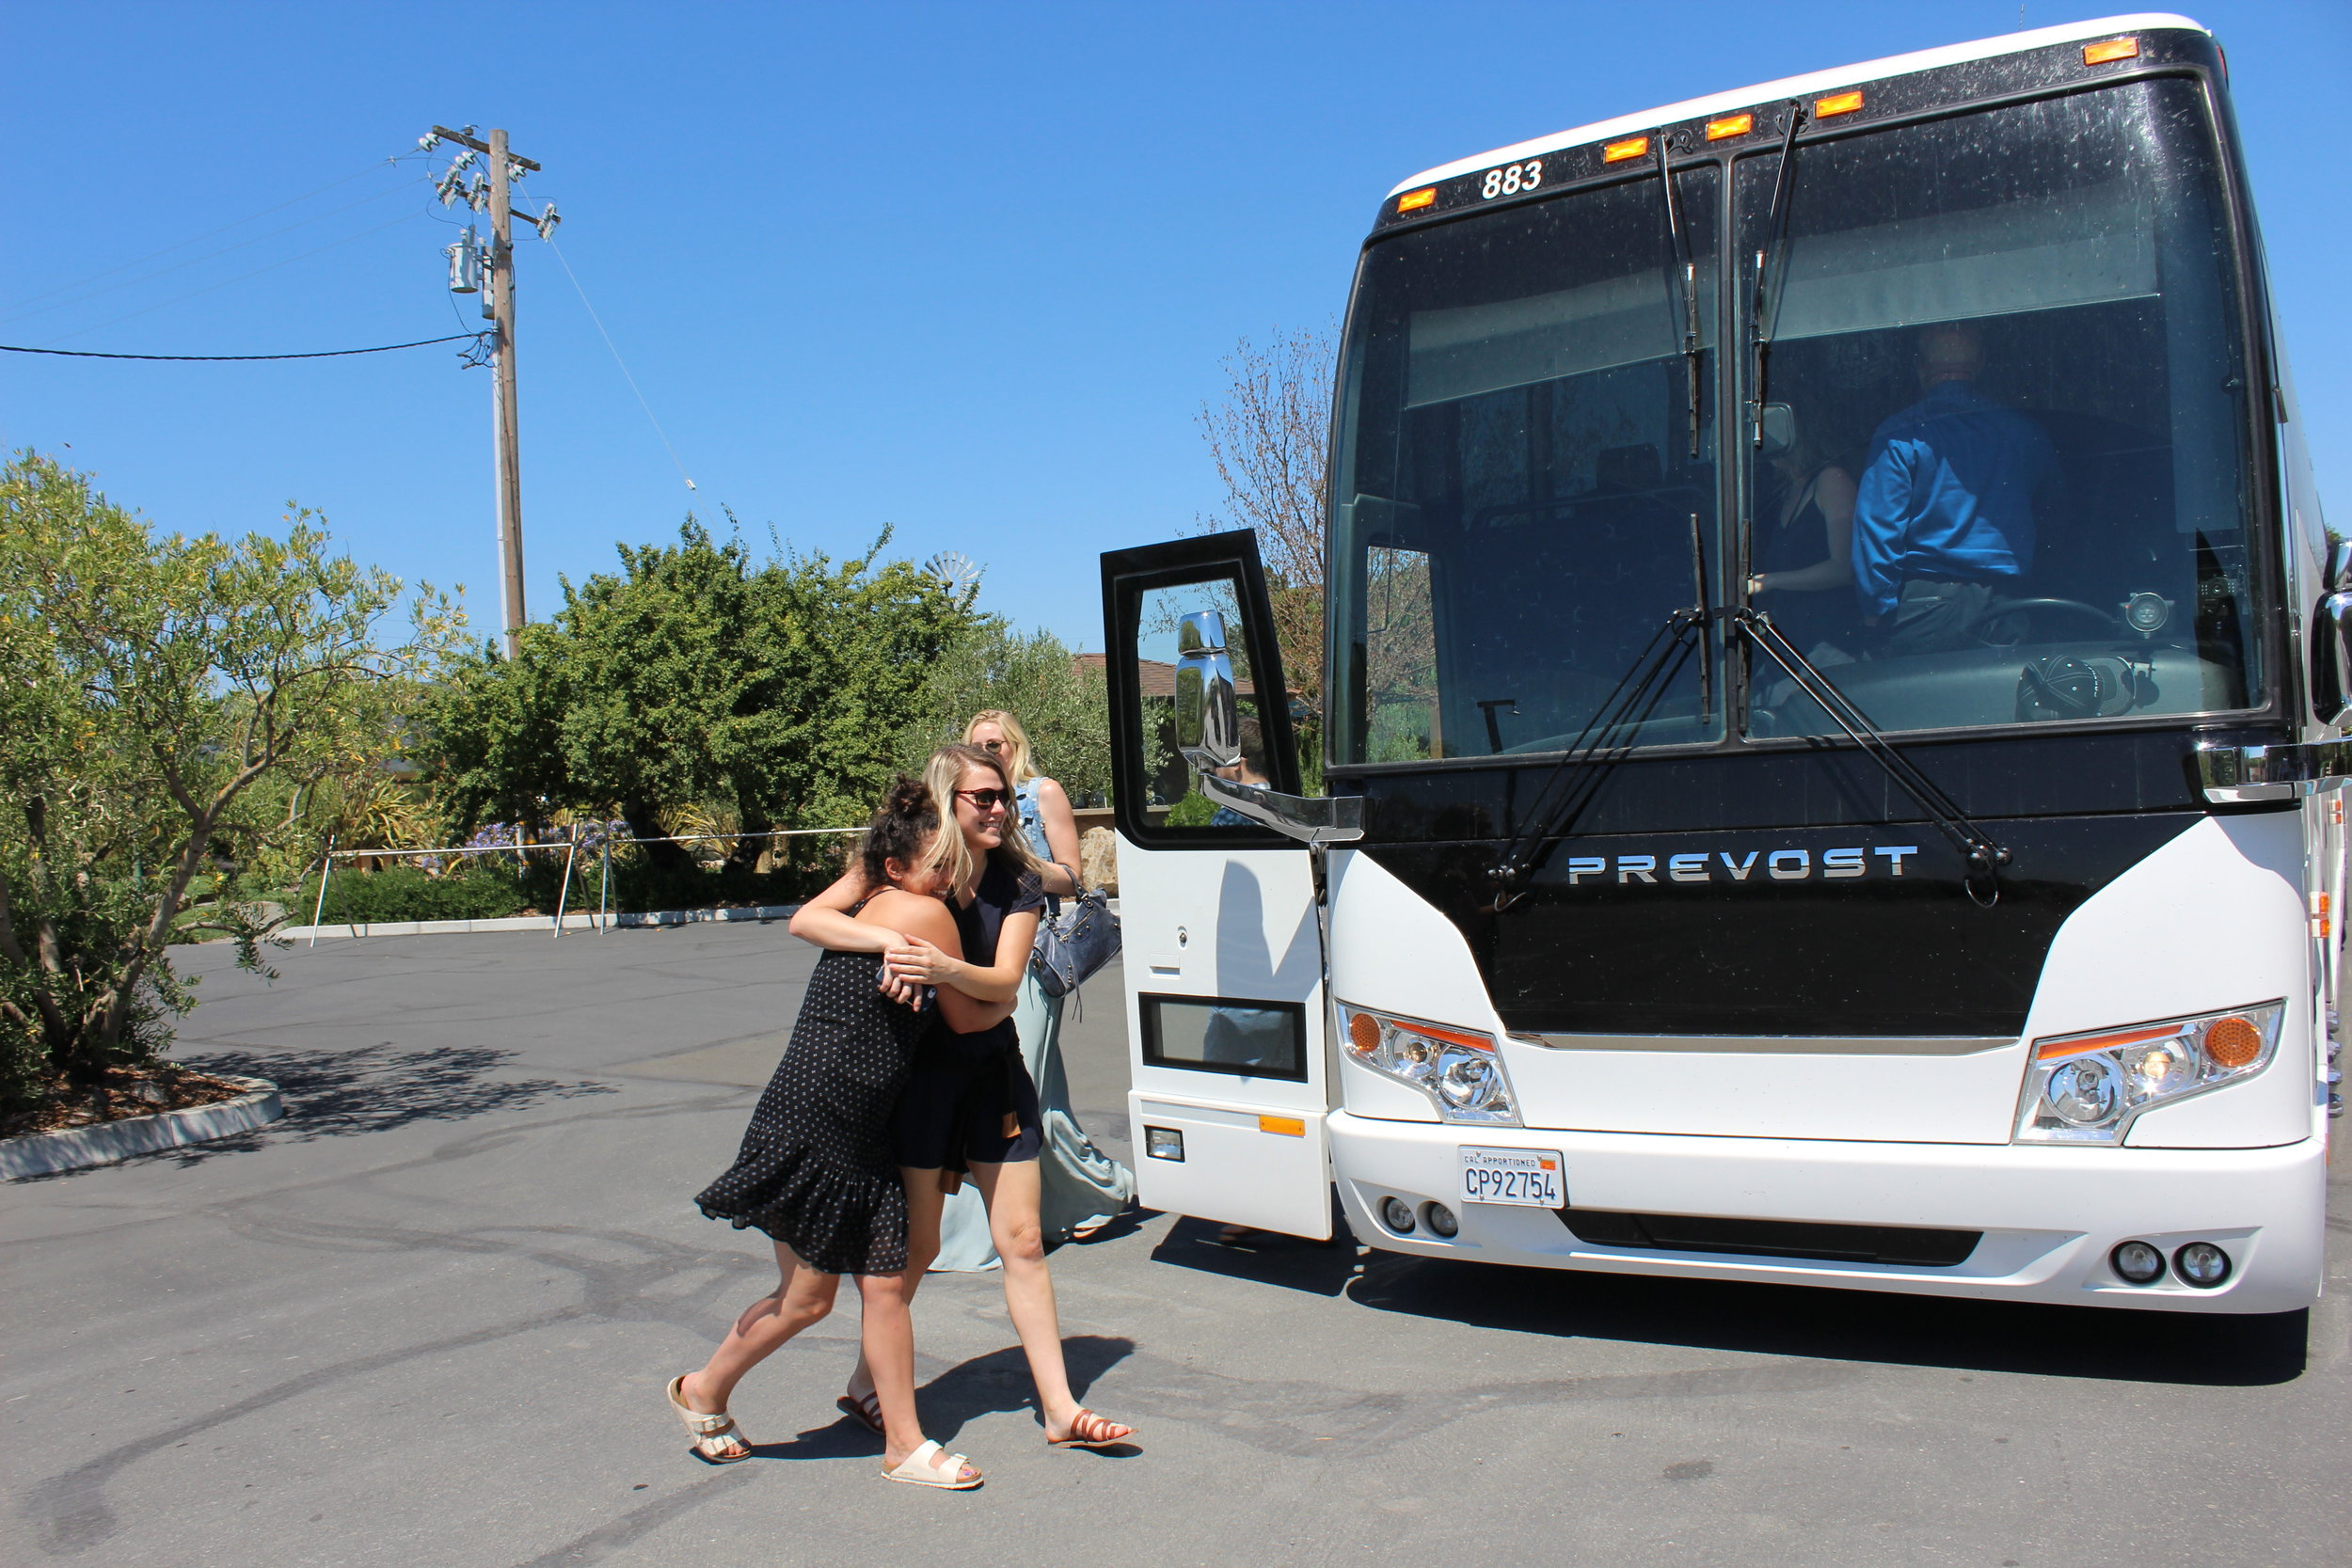 happy-tour-guests-in-front-of-luxury-coach-bus